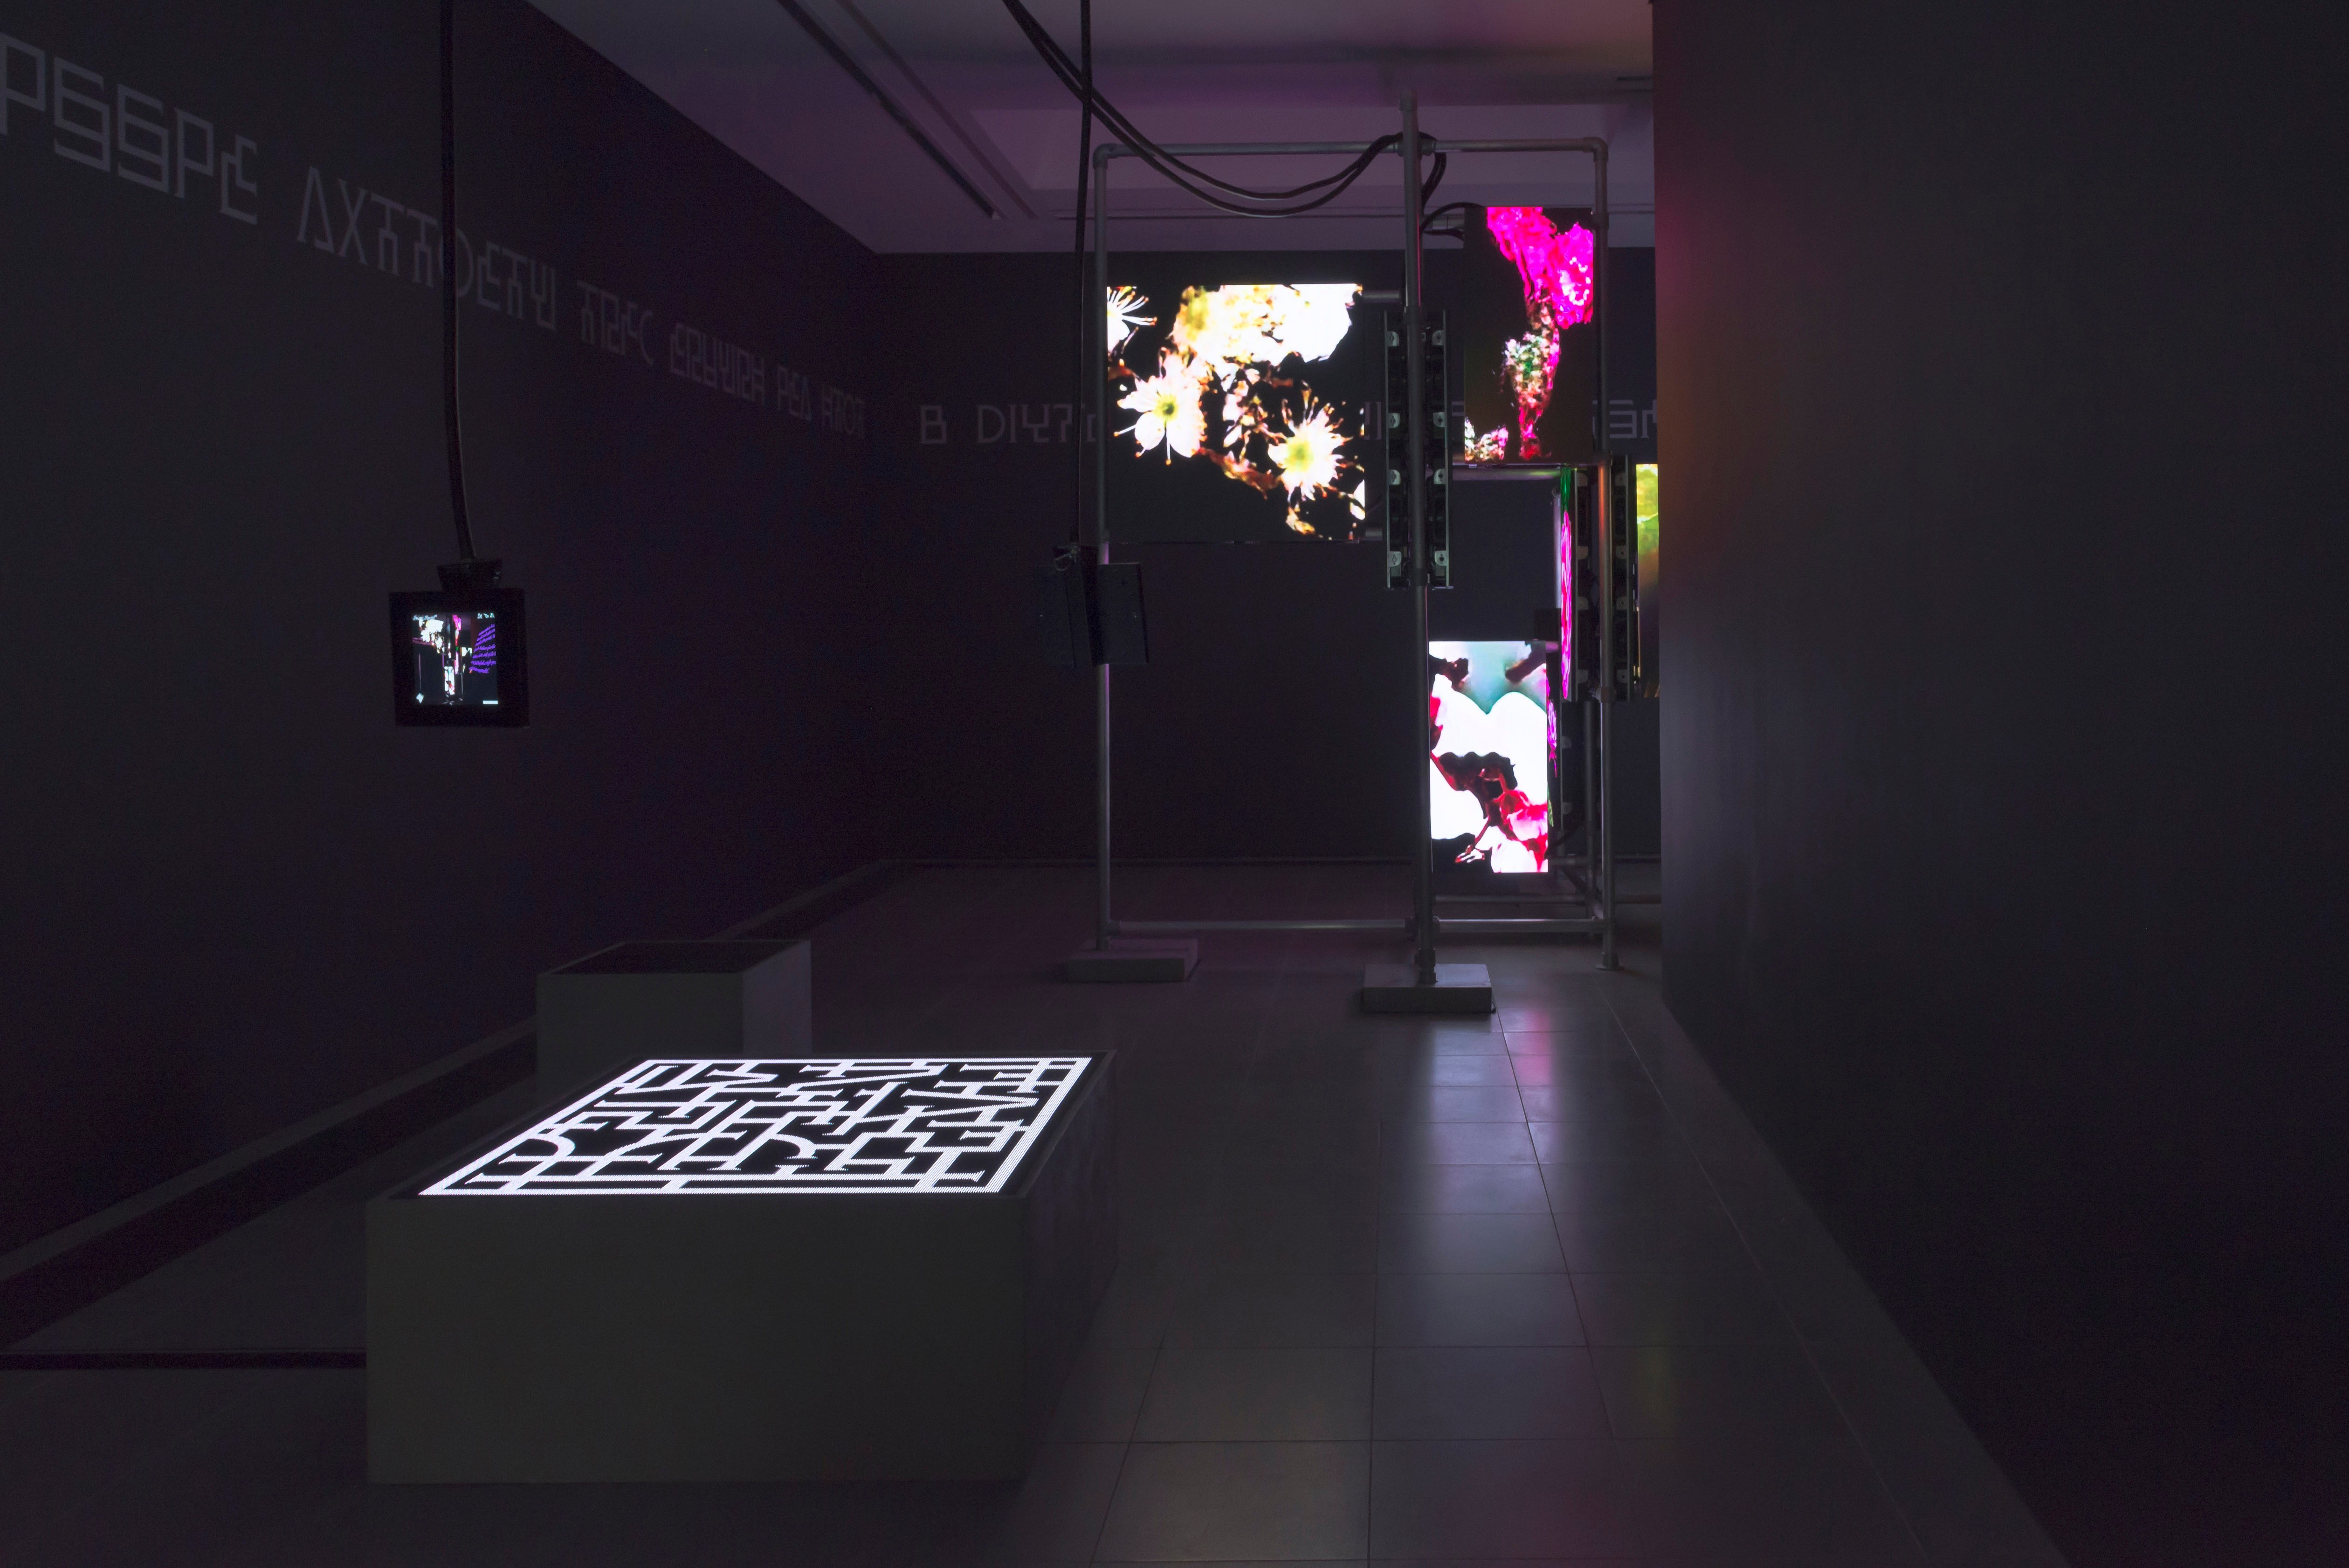 A dark room with multiple screen propped up in metal bars as a part artist Hito Steyerls's exhibition at the Serpentine Galleries in London